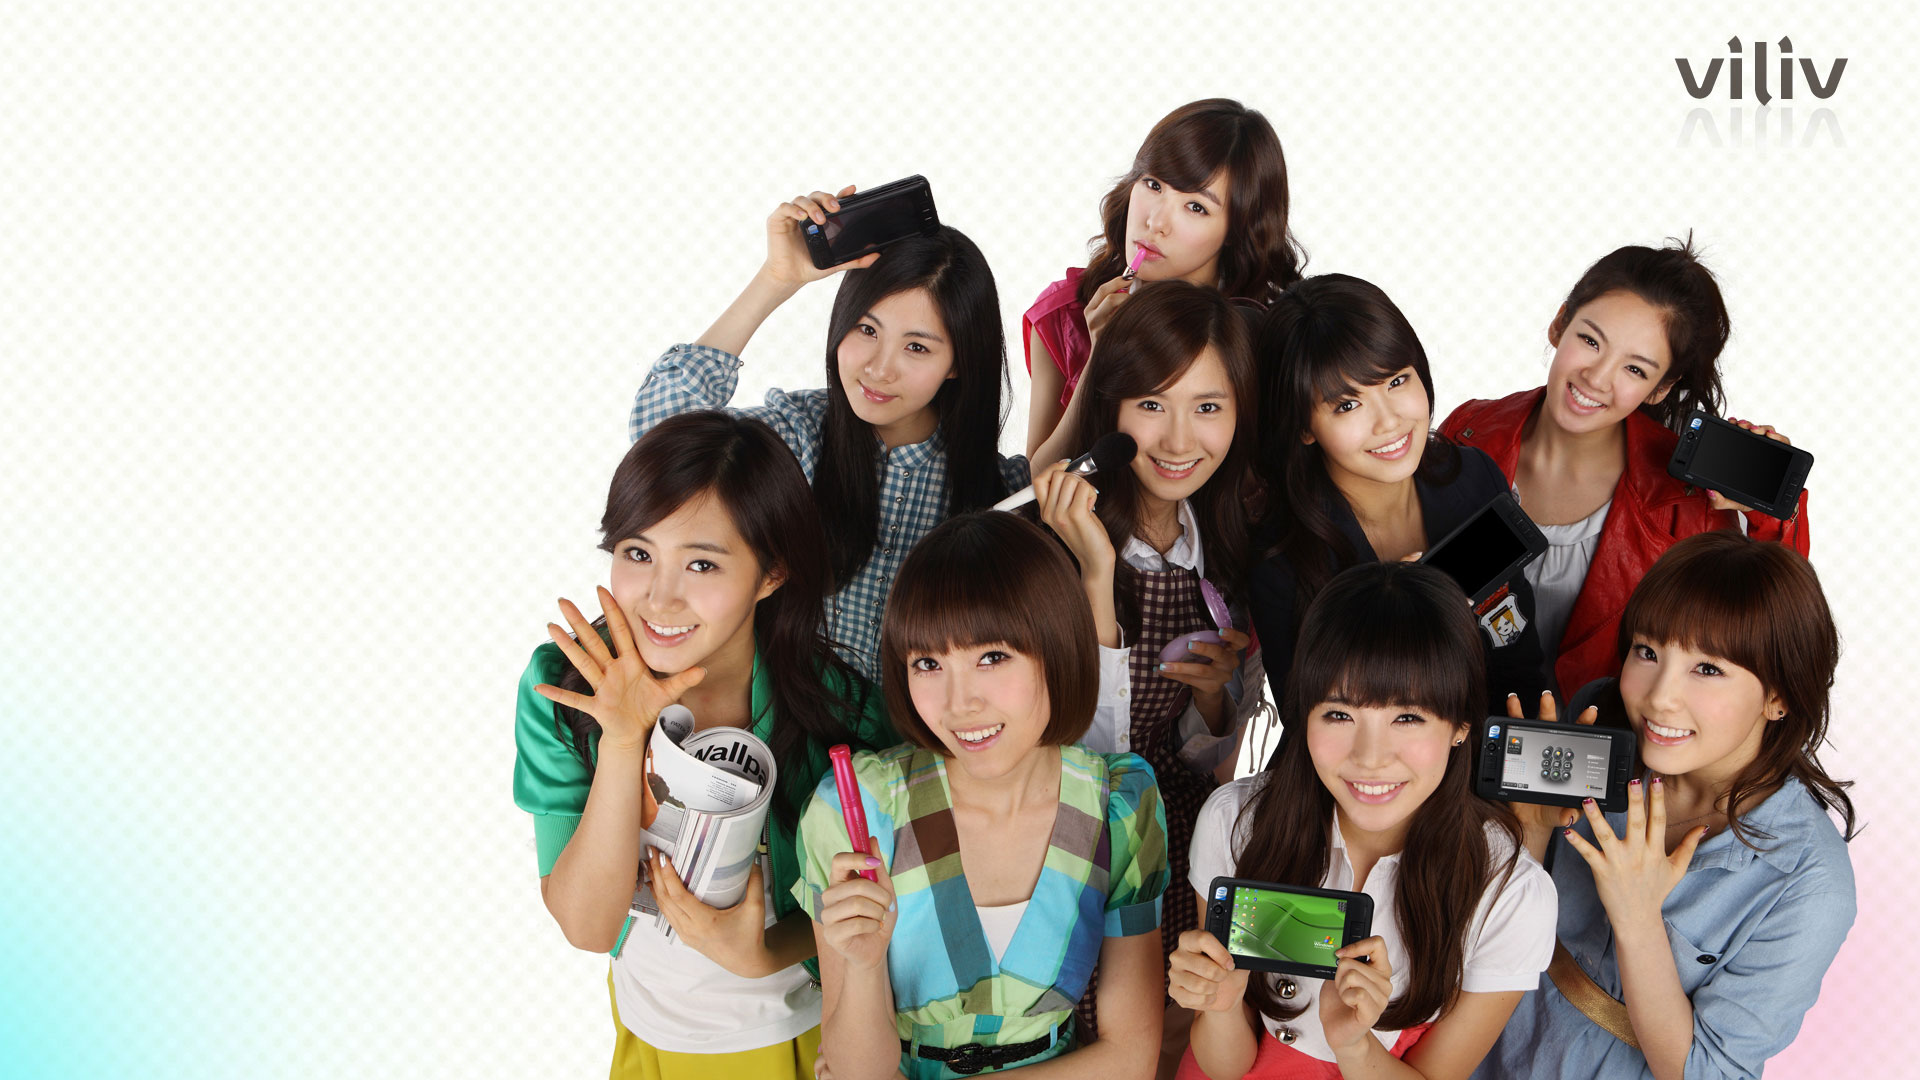 Girls Generation Viliv wallpaper 2009